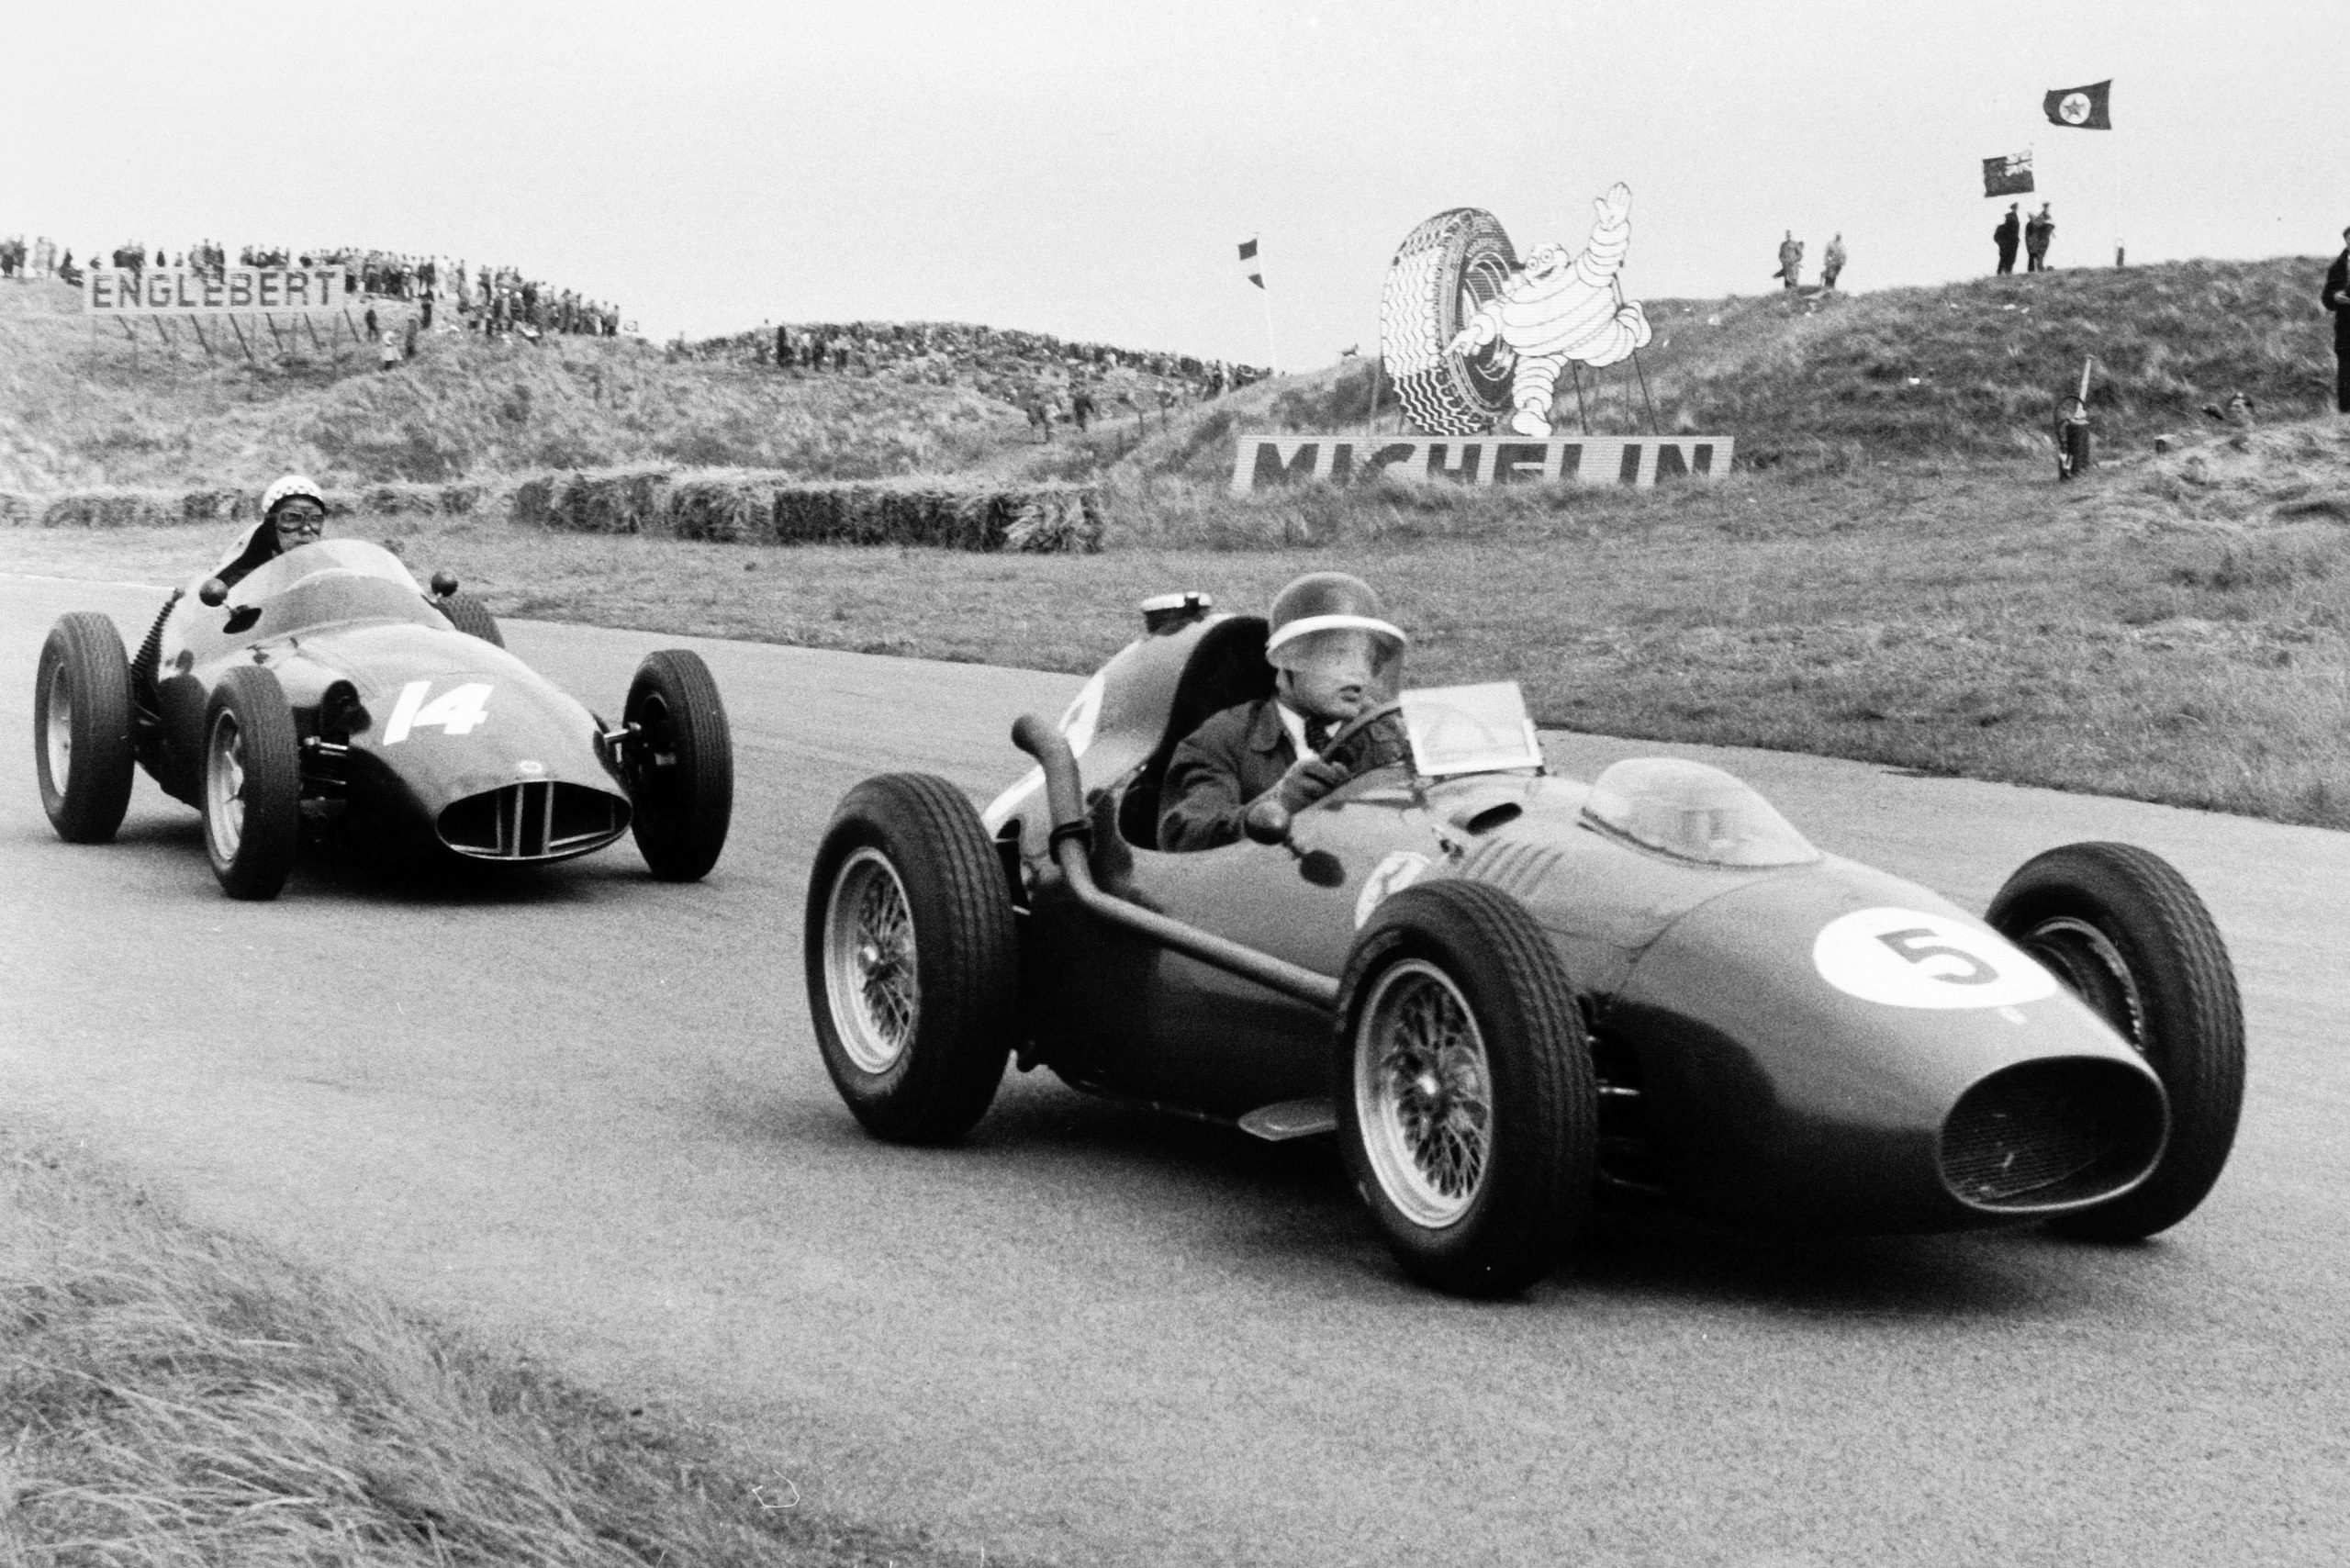 Mike Hawthorn in his Ferrari Dino 246, ahead of Jean Behra in a BRM P25.